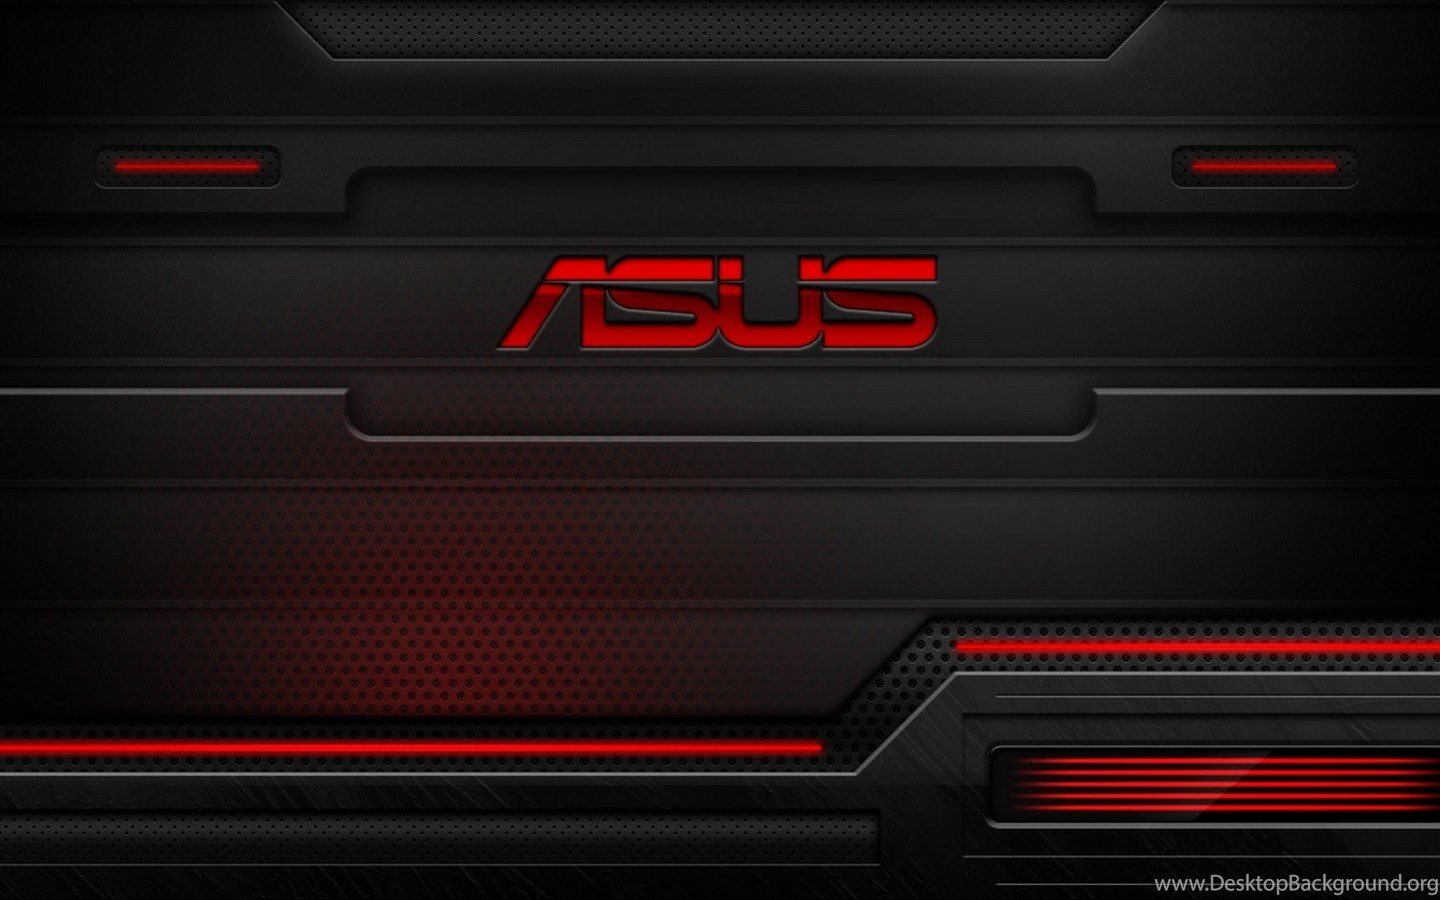 asus red tecnology wallpaper - photo #4